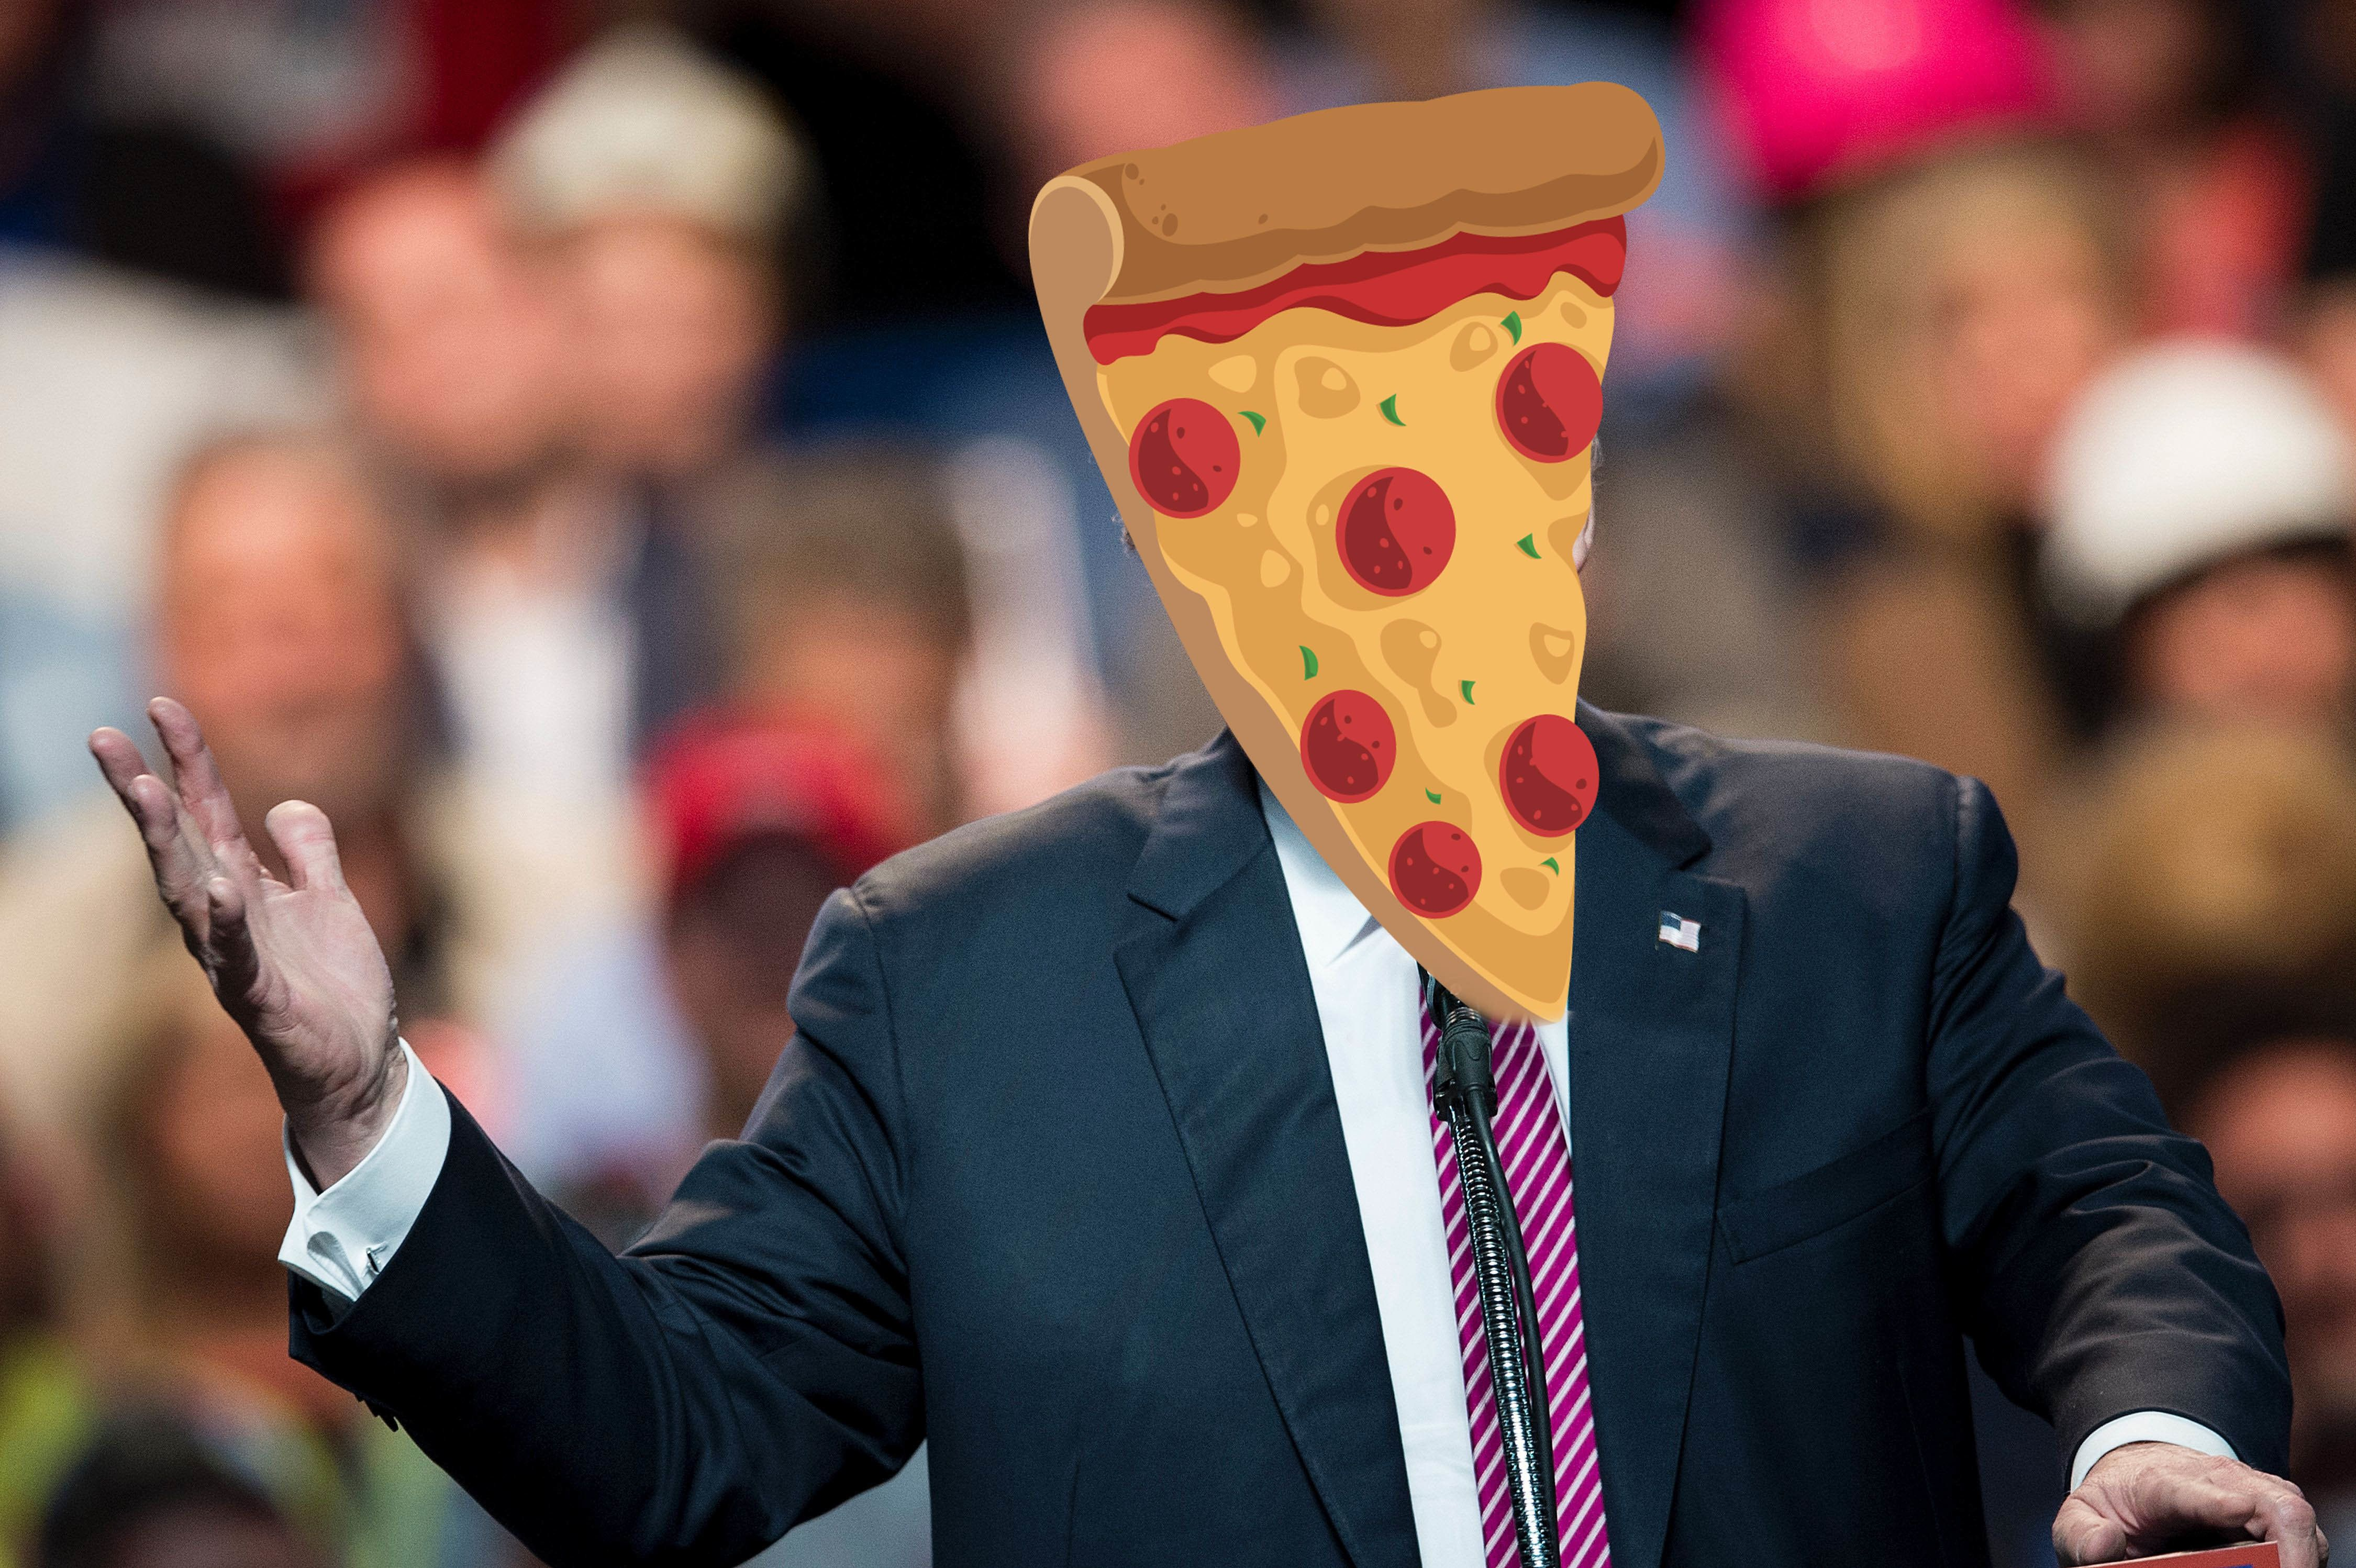 """Online dating app Bumble found that their """"Pizza for President""""filter got more right swipes than their Trump one."""